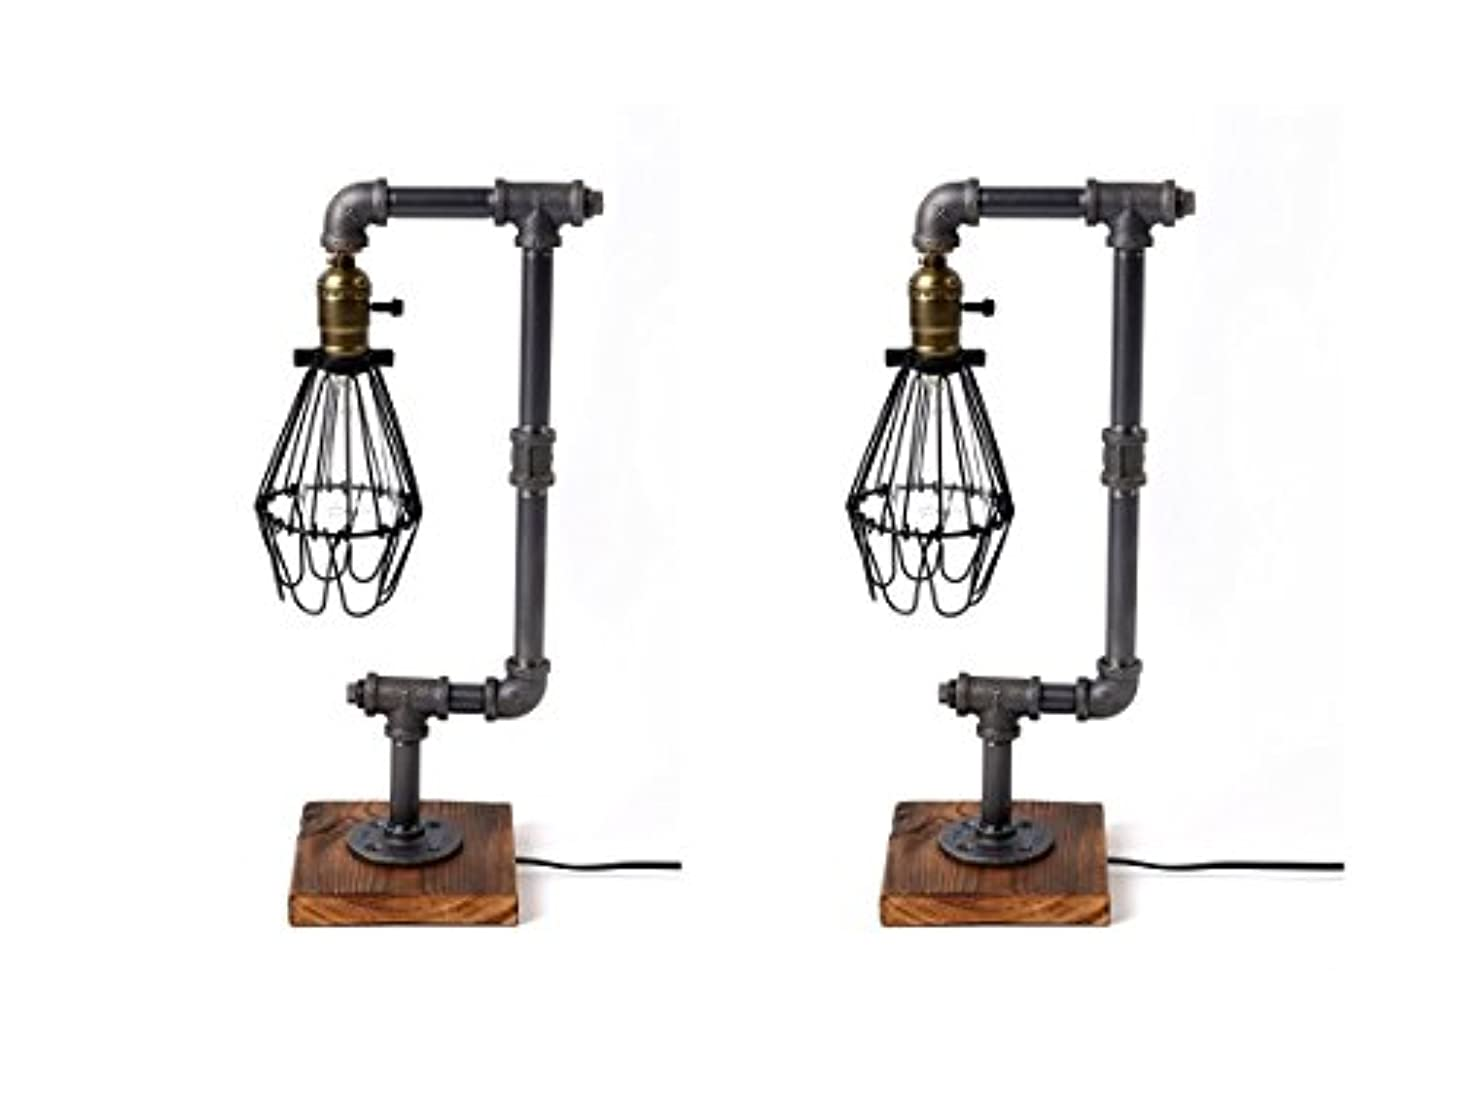 Pack of 2 Bird Cage Designer Steampunk Water Piping Desk Top Table Lamp Wood Base Rustic Home Deco Steam Punk Industrial Interior Design Bedside Minimalist Victorian Edison Iron Retro Lighting Lamps